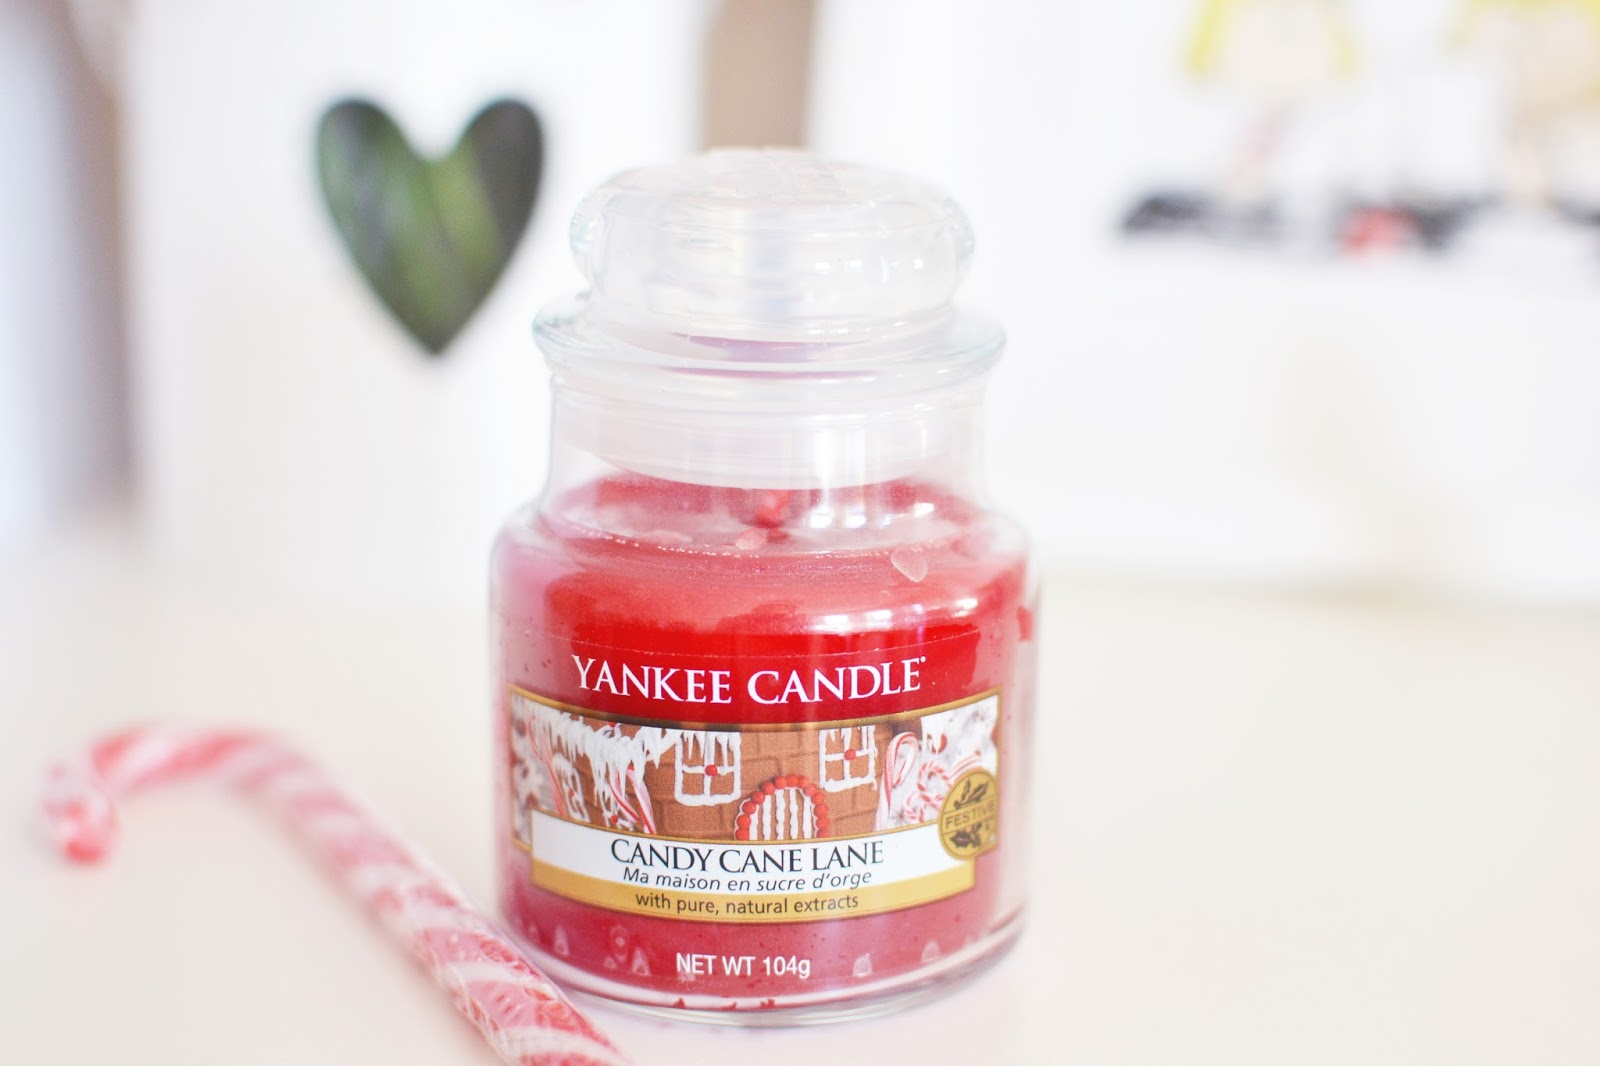 yankee candle candy cane lane